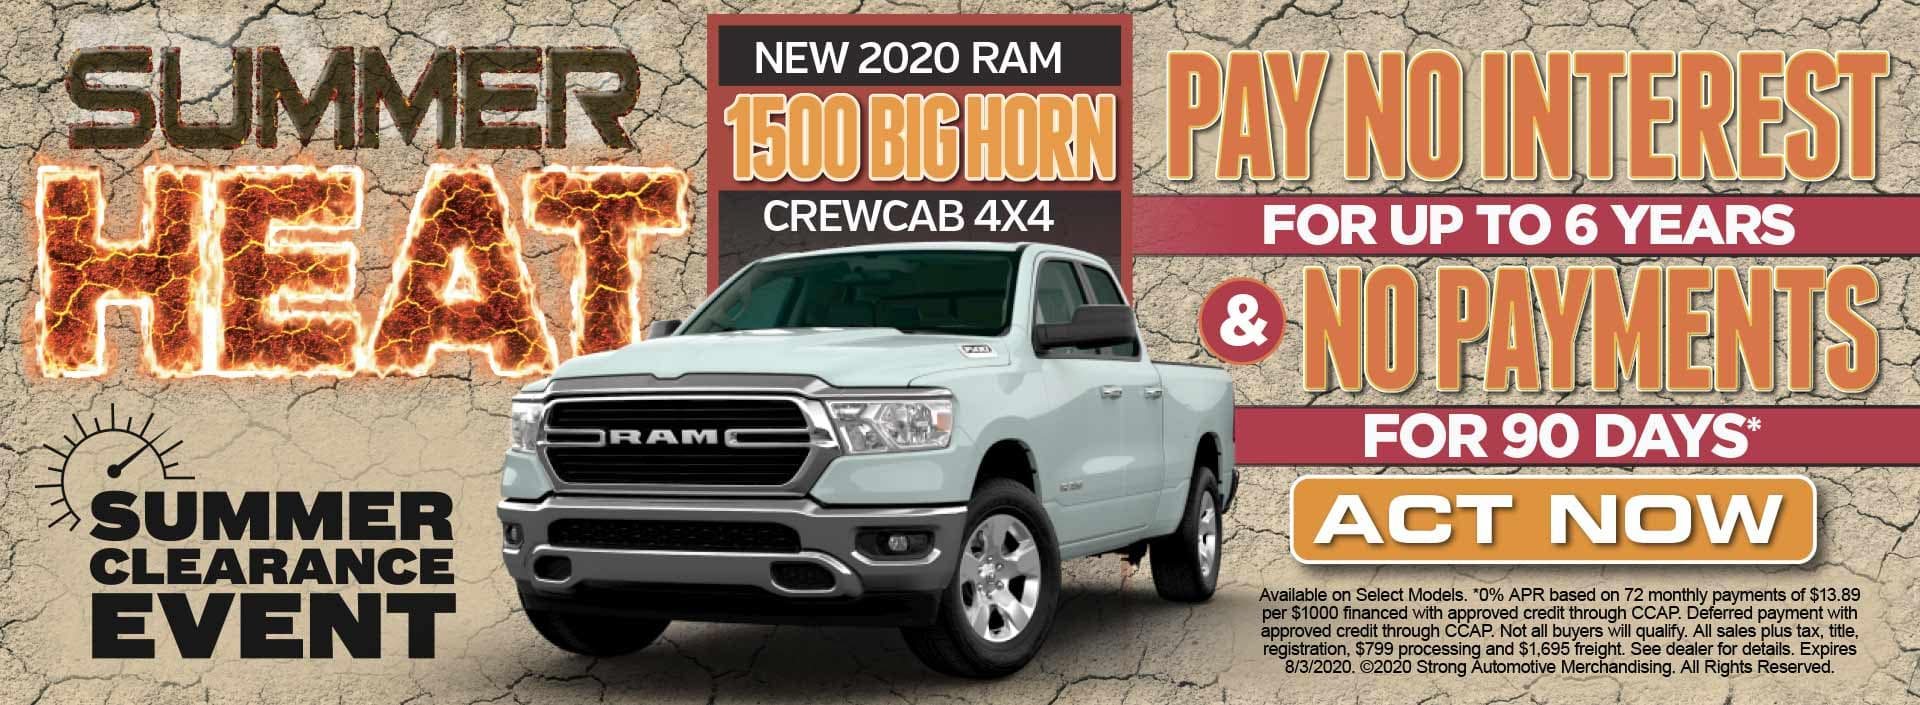 New 2020 Ram 1500 Pay No Interest for up to 6 Years* Act Now